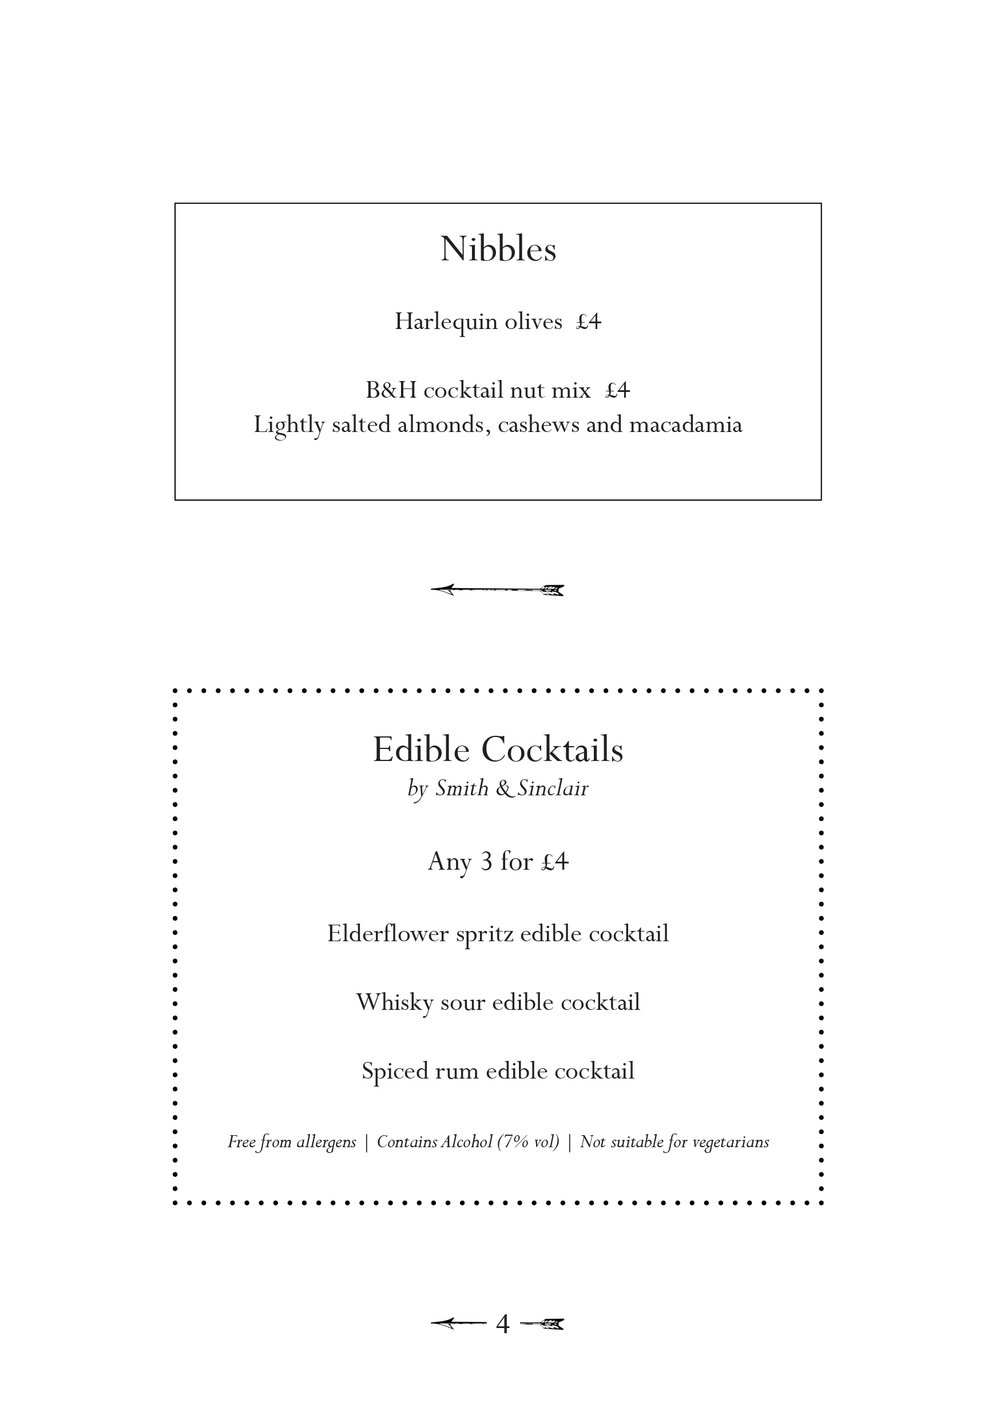 Rev_JW_Simpson_Menu_SS18 March4.jpg